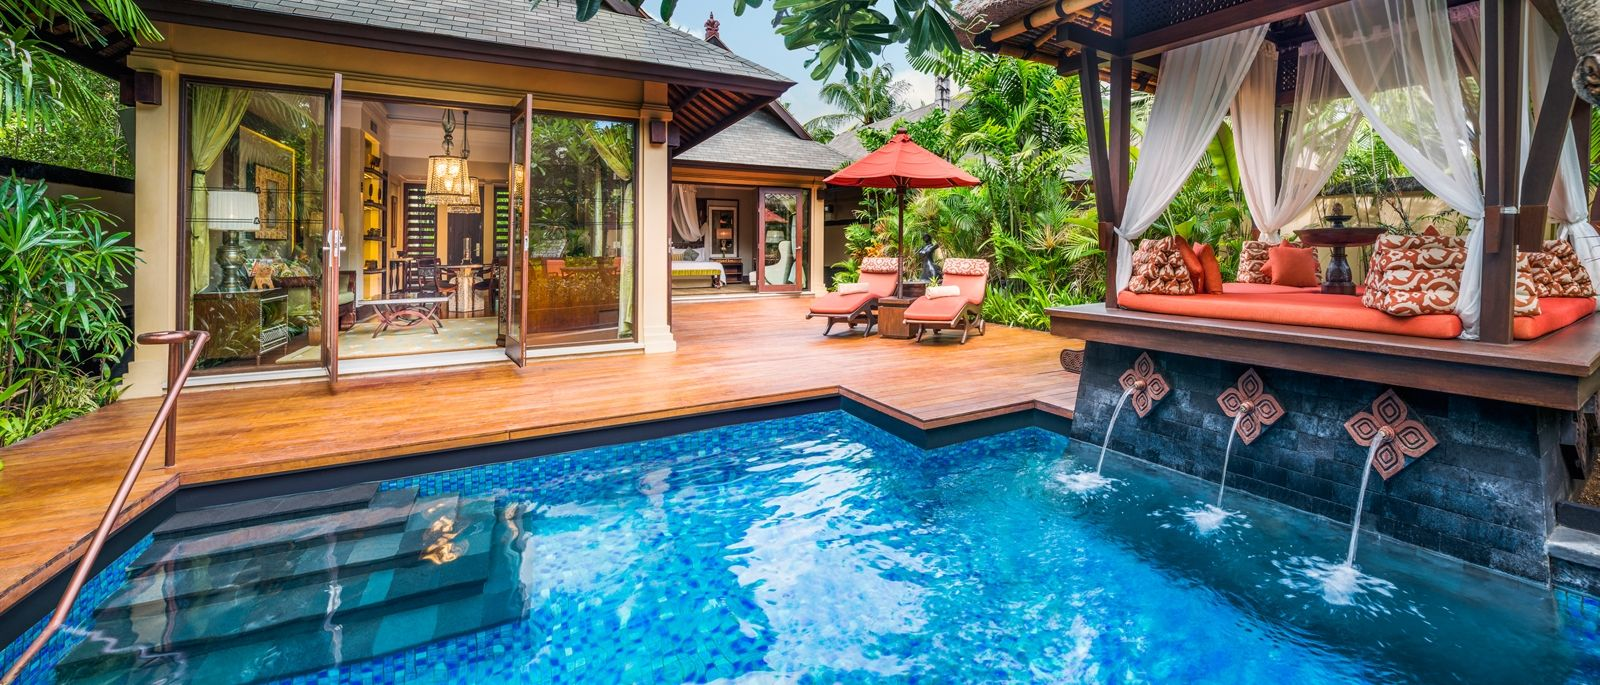 Gardenia Villa at The St. Regis Bali Resort